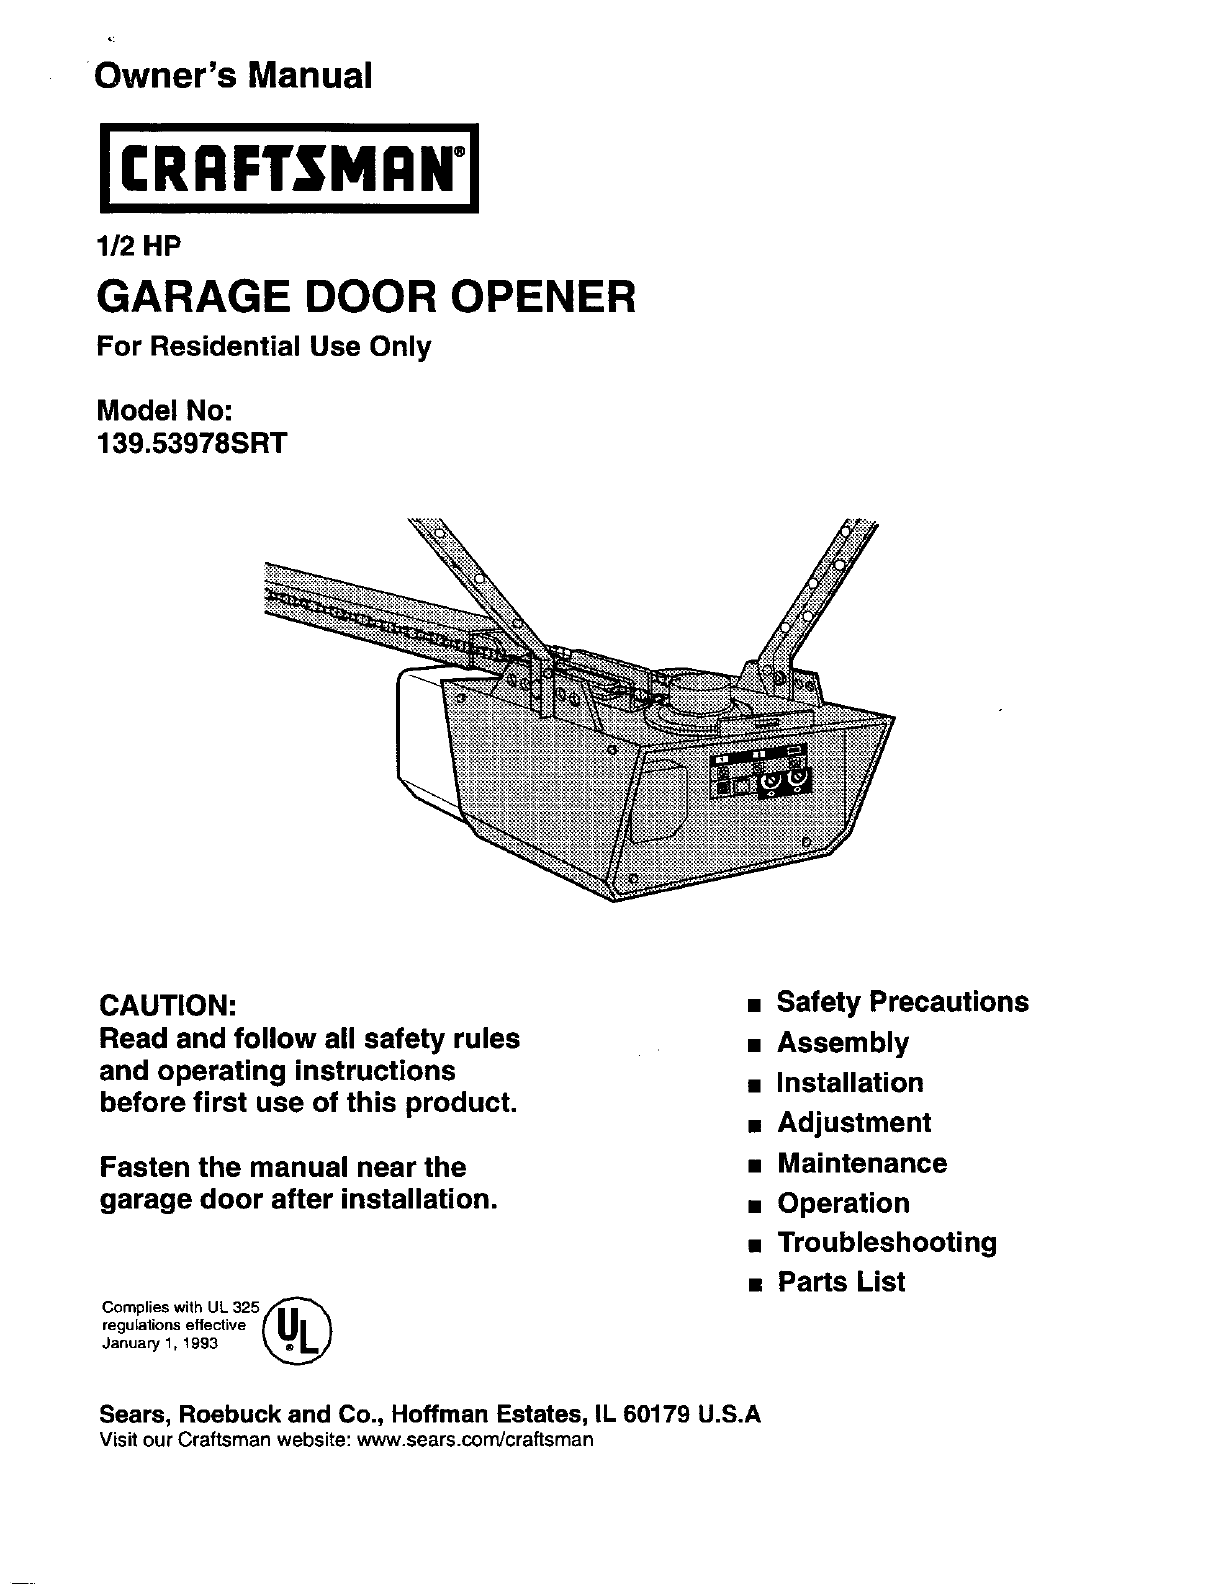 0f05b938 d0cb 4872 aeee 96ef63eab4f3 bg1 craftsman garage door opener 139 53978srt user guide Craftsman Plunge Router Models at reclaimingppi.co